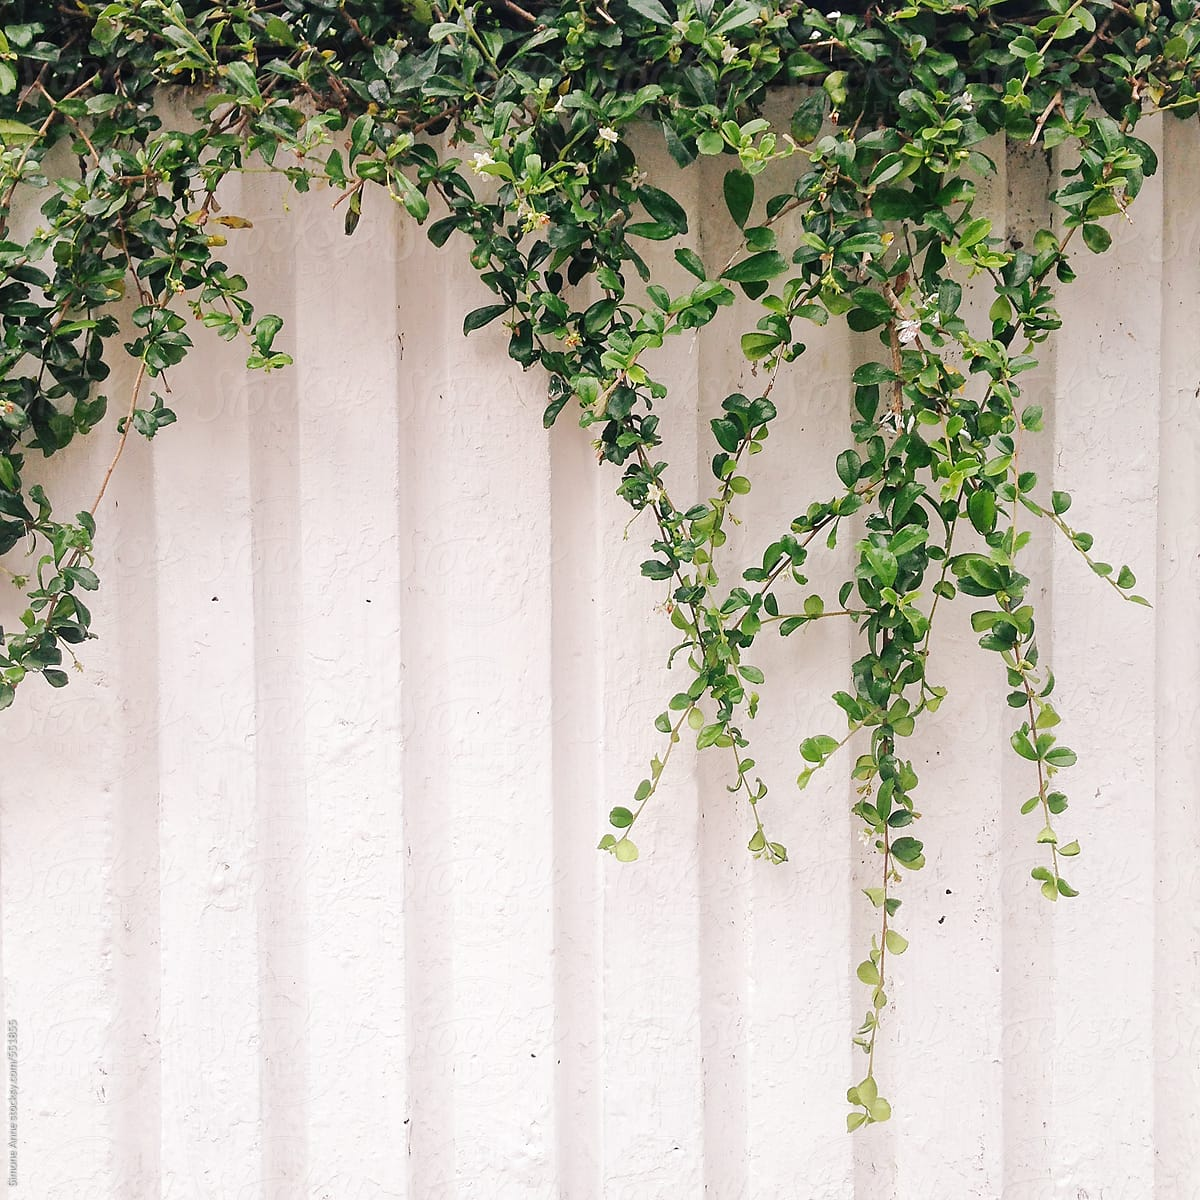 Green Plants Hanging Over A White Wall Stocksy United